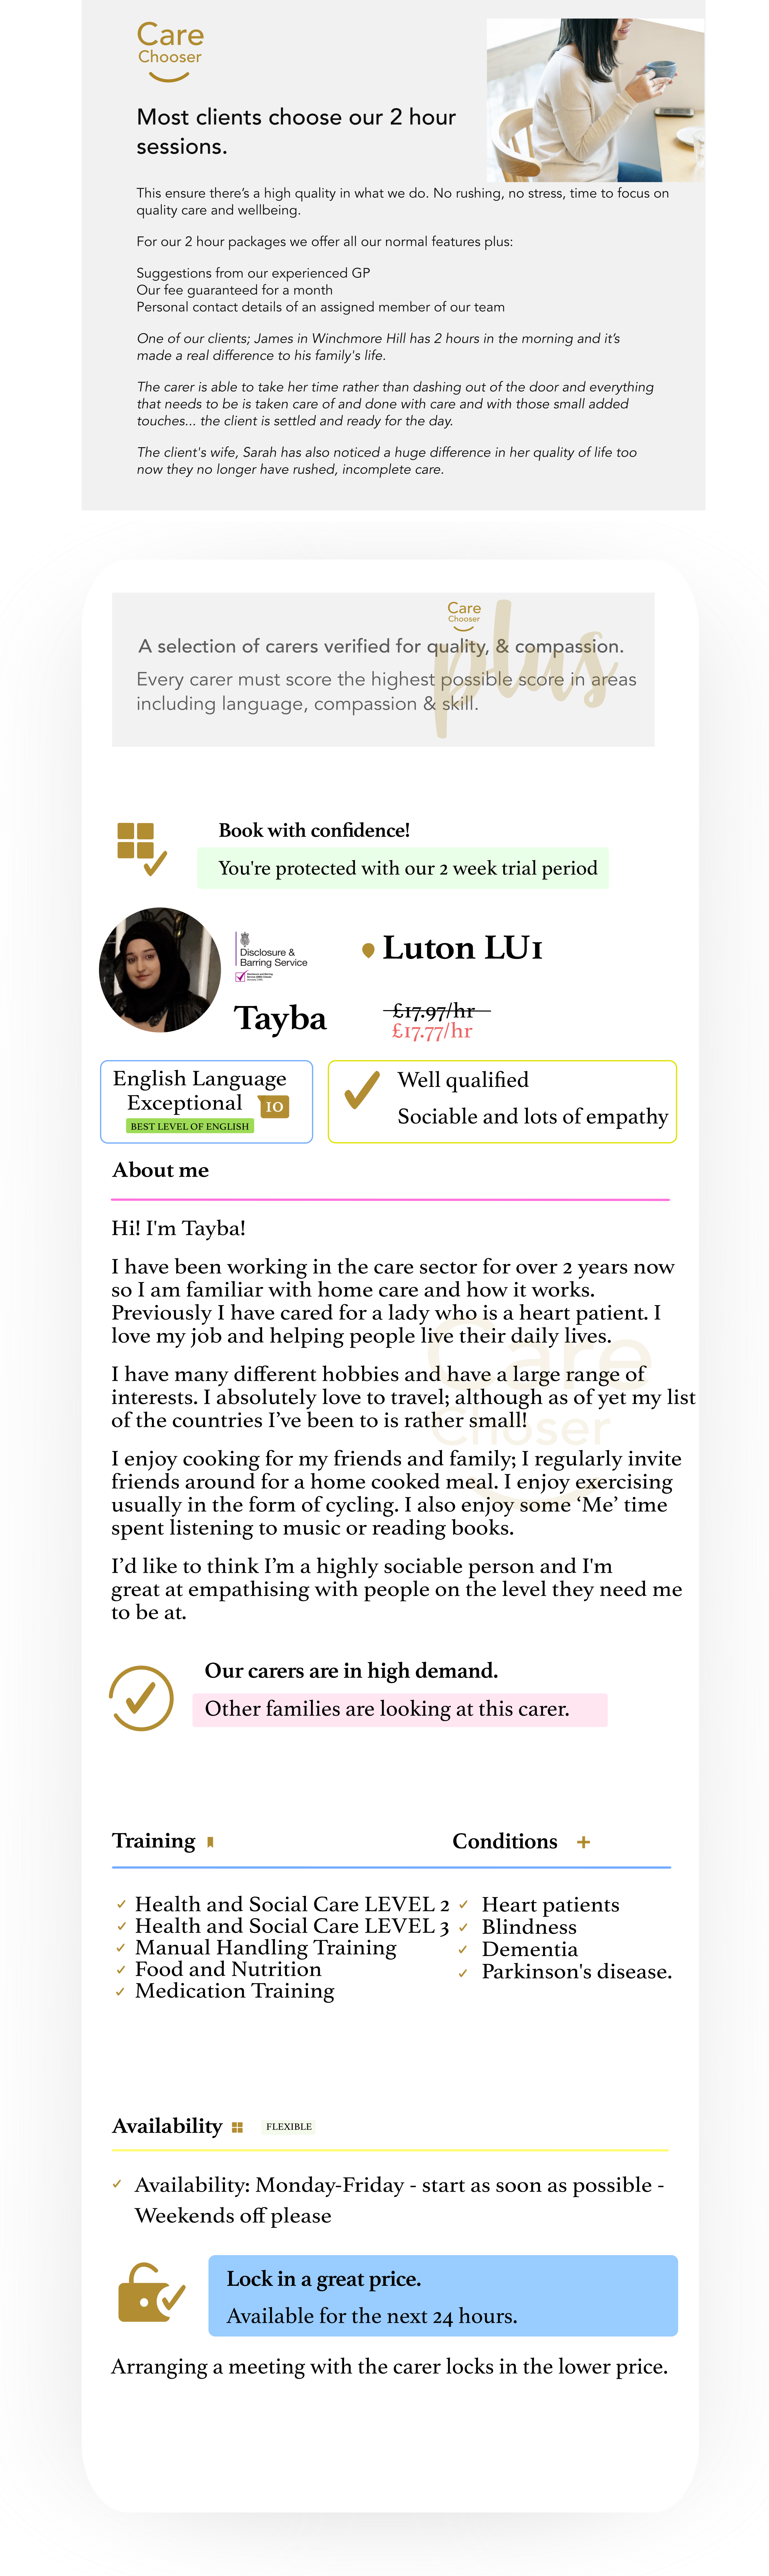 Tayba - home care in Luton.png